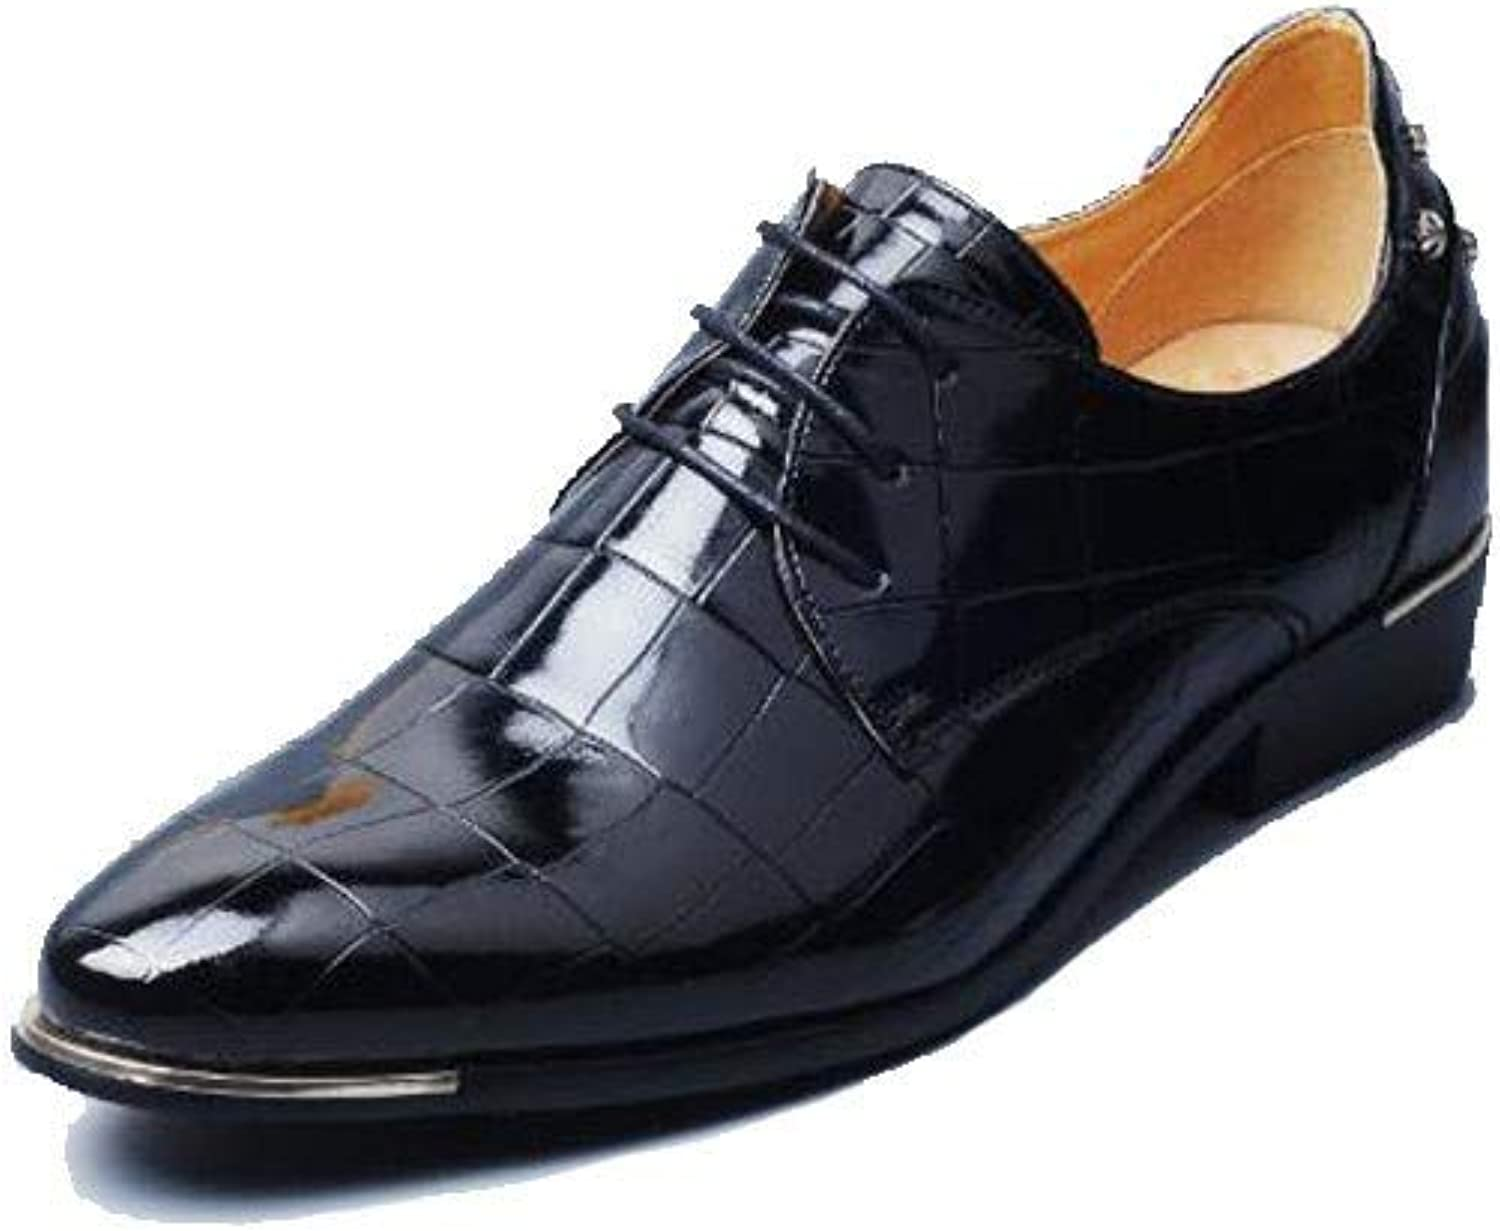 Jiang-ZX Men's shoes,Men's Leather shoes Men's Trend Business Dress Korean Version Of The British Pointed